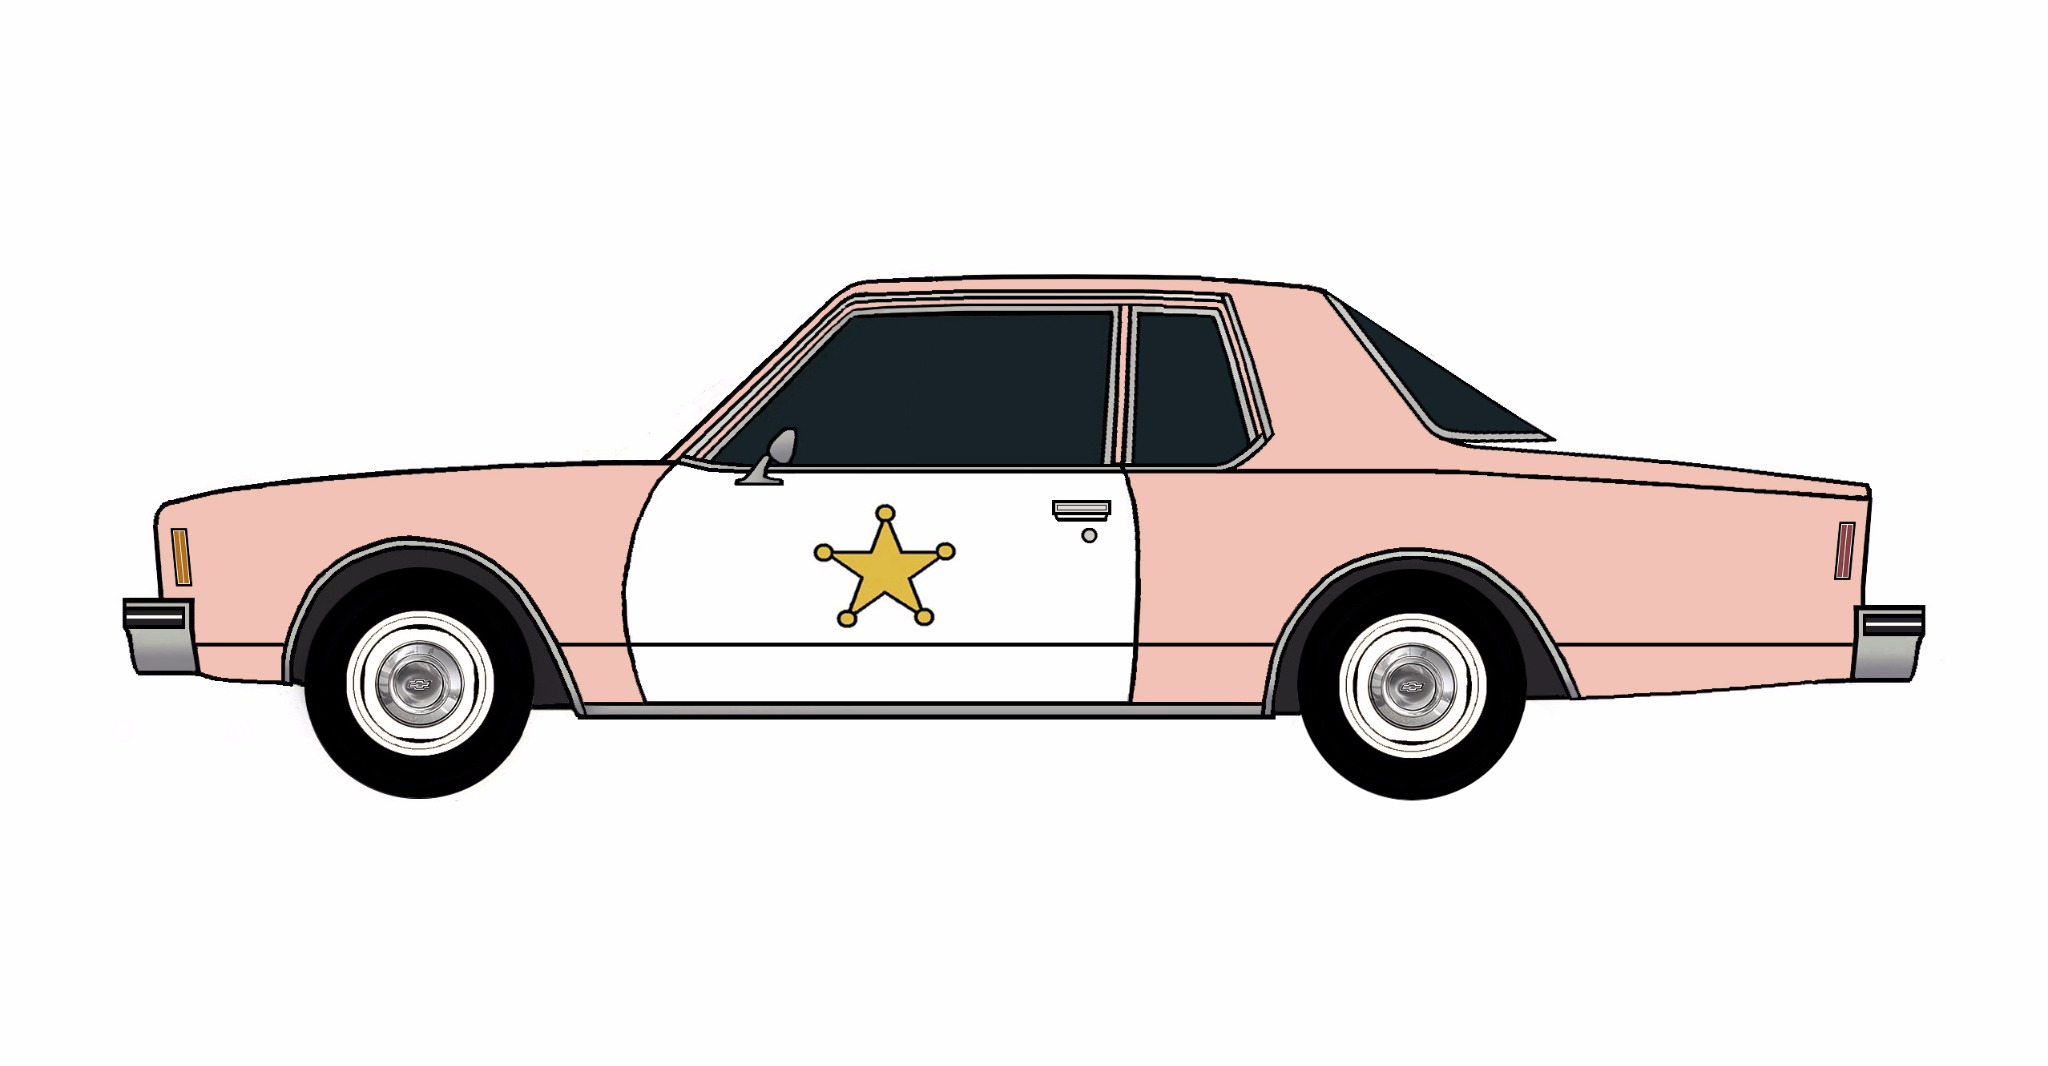 1977 Chevy Impala Police Coupe ROSE PINK